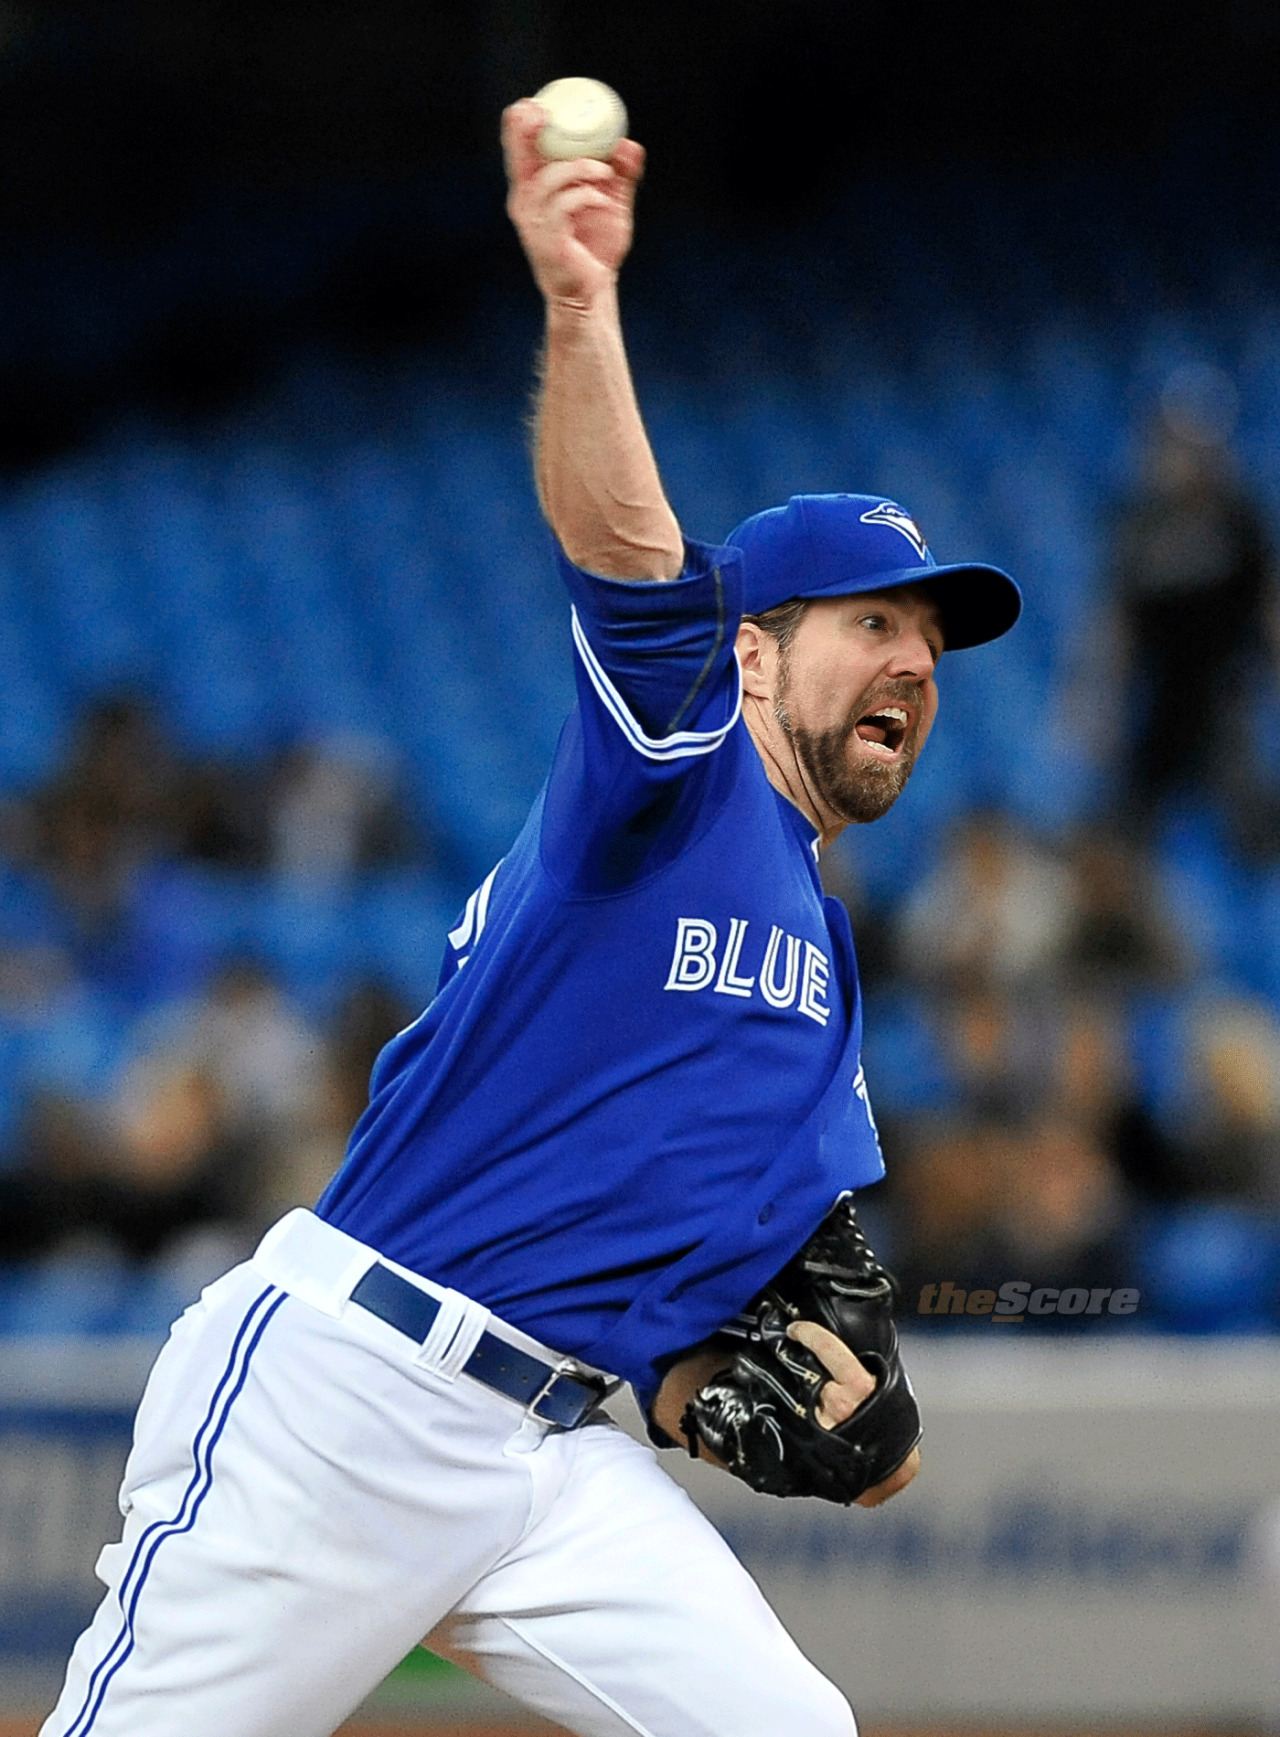 Pic: Jays P @RADickey43 throwing pitches. (In Uniform)